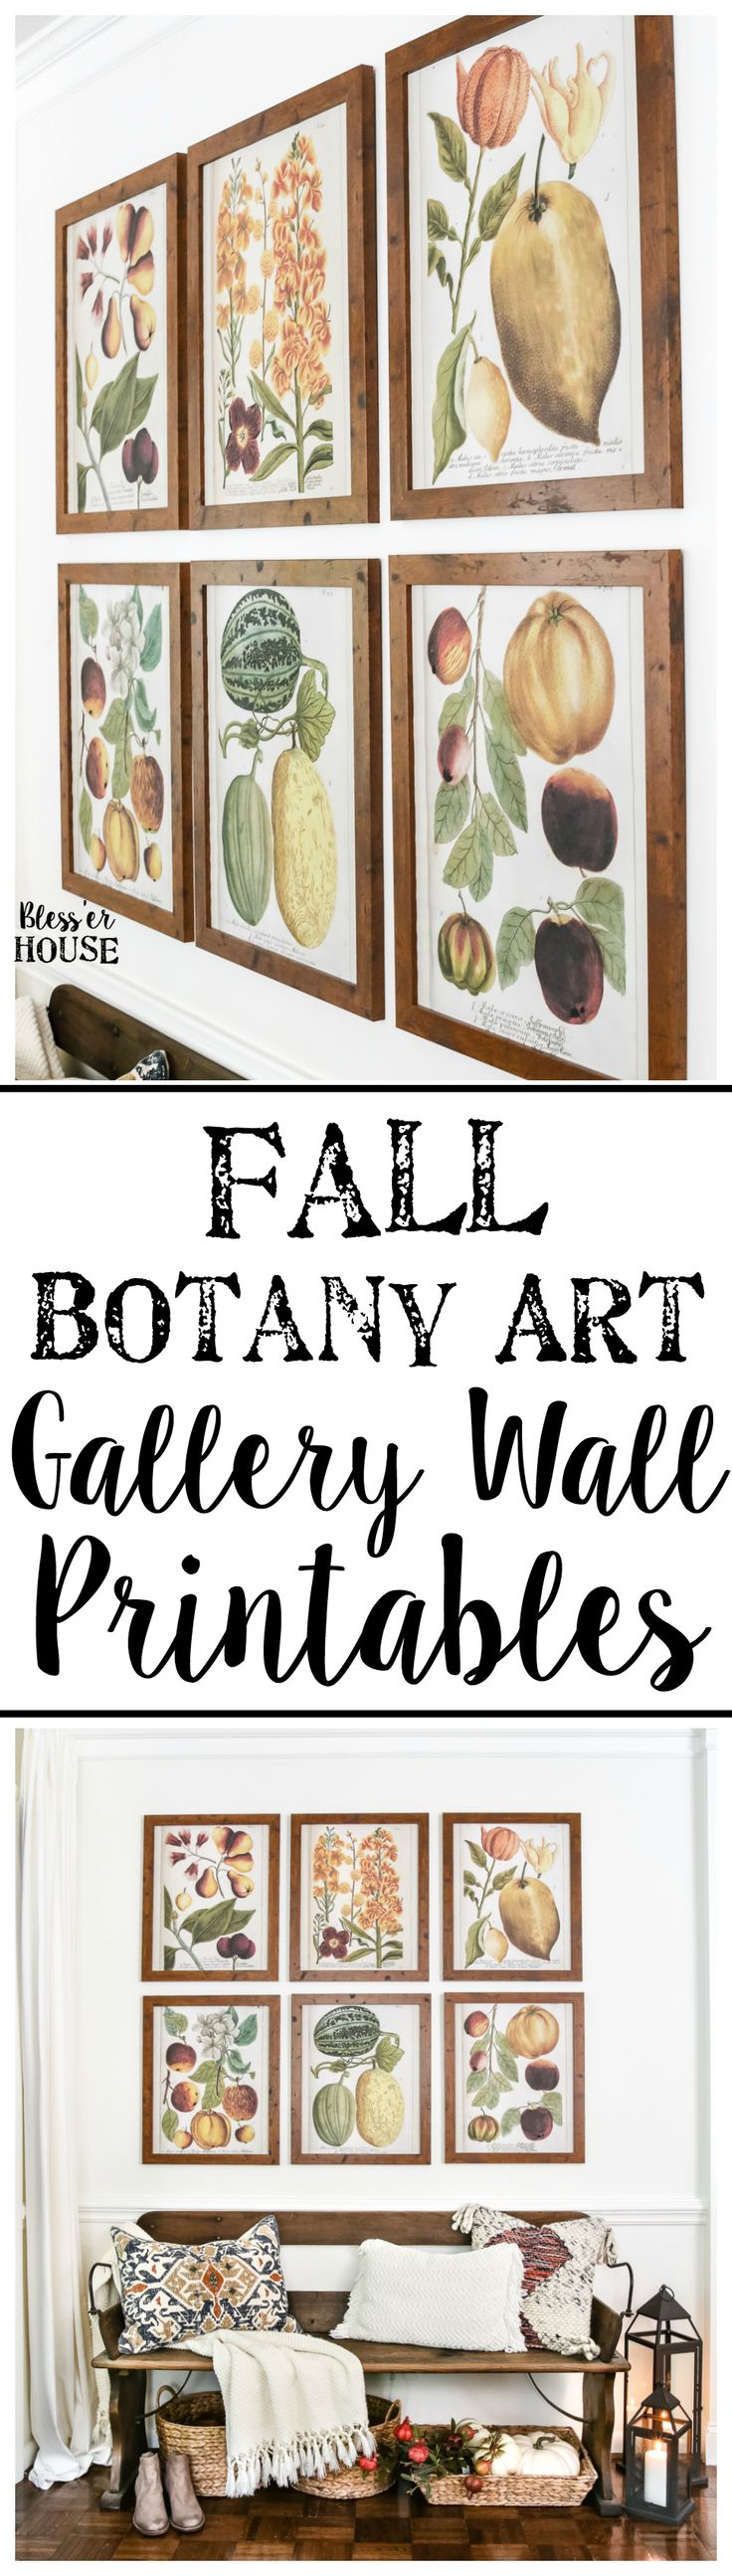 Fall Botany Art Gallery Wall Printables   blesserhouse.com - A free printable set of 6 fall botany art prints for a gallery wall, plus a bloghop with 29 autumn-inspired printables for the home.